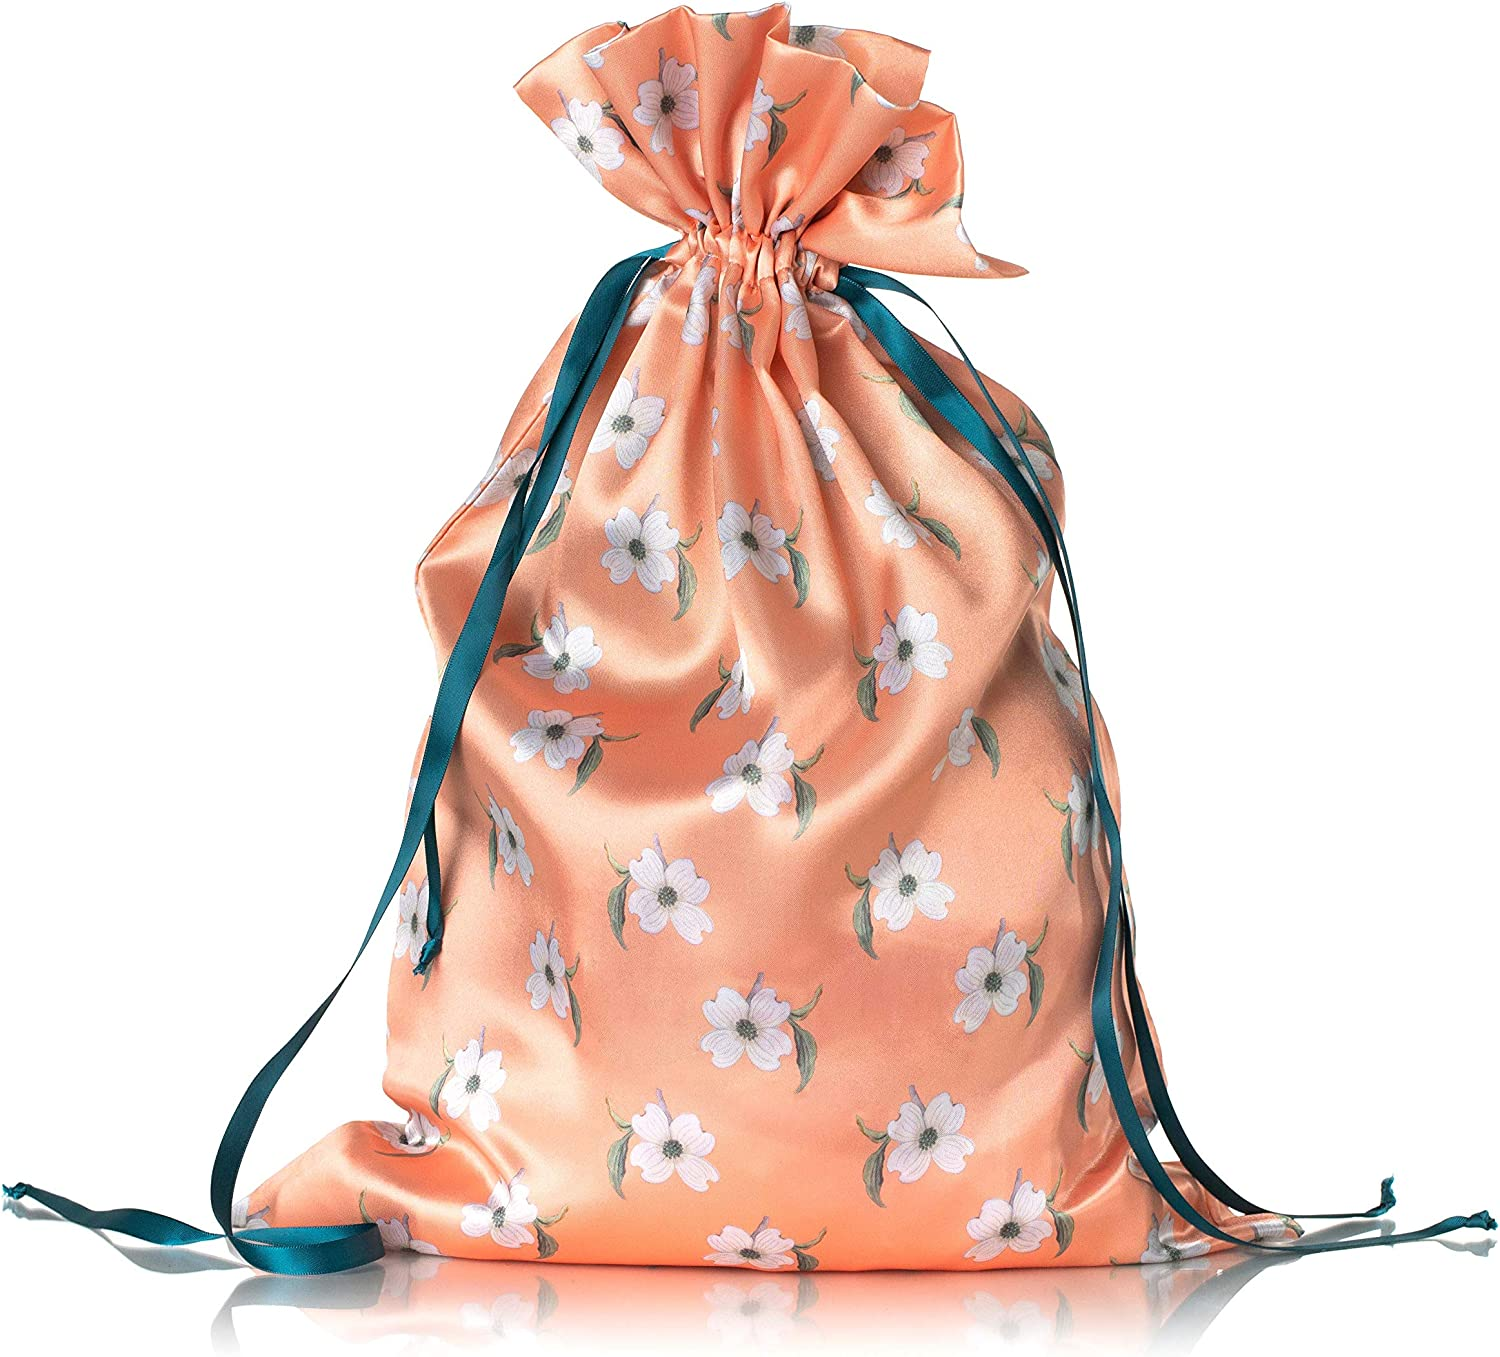 Pink Lava Honey Minx by Nicole Richie Womens Eva Intimates Drawstring Bag Lightweight Satin Travel Essential Keep Clothing from Snagging